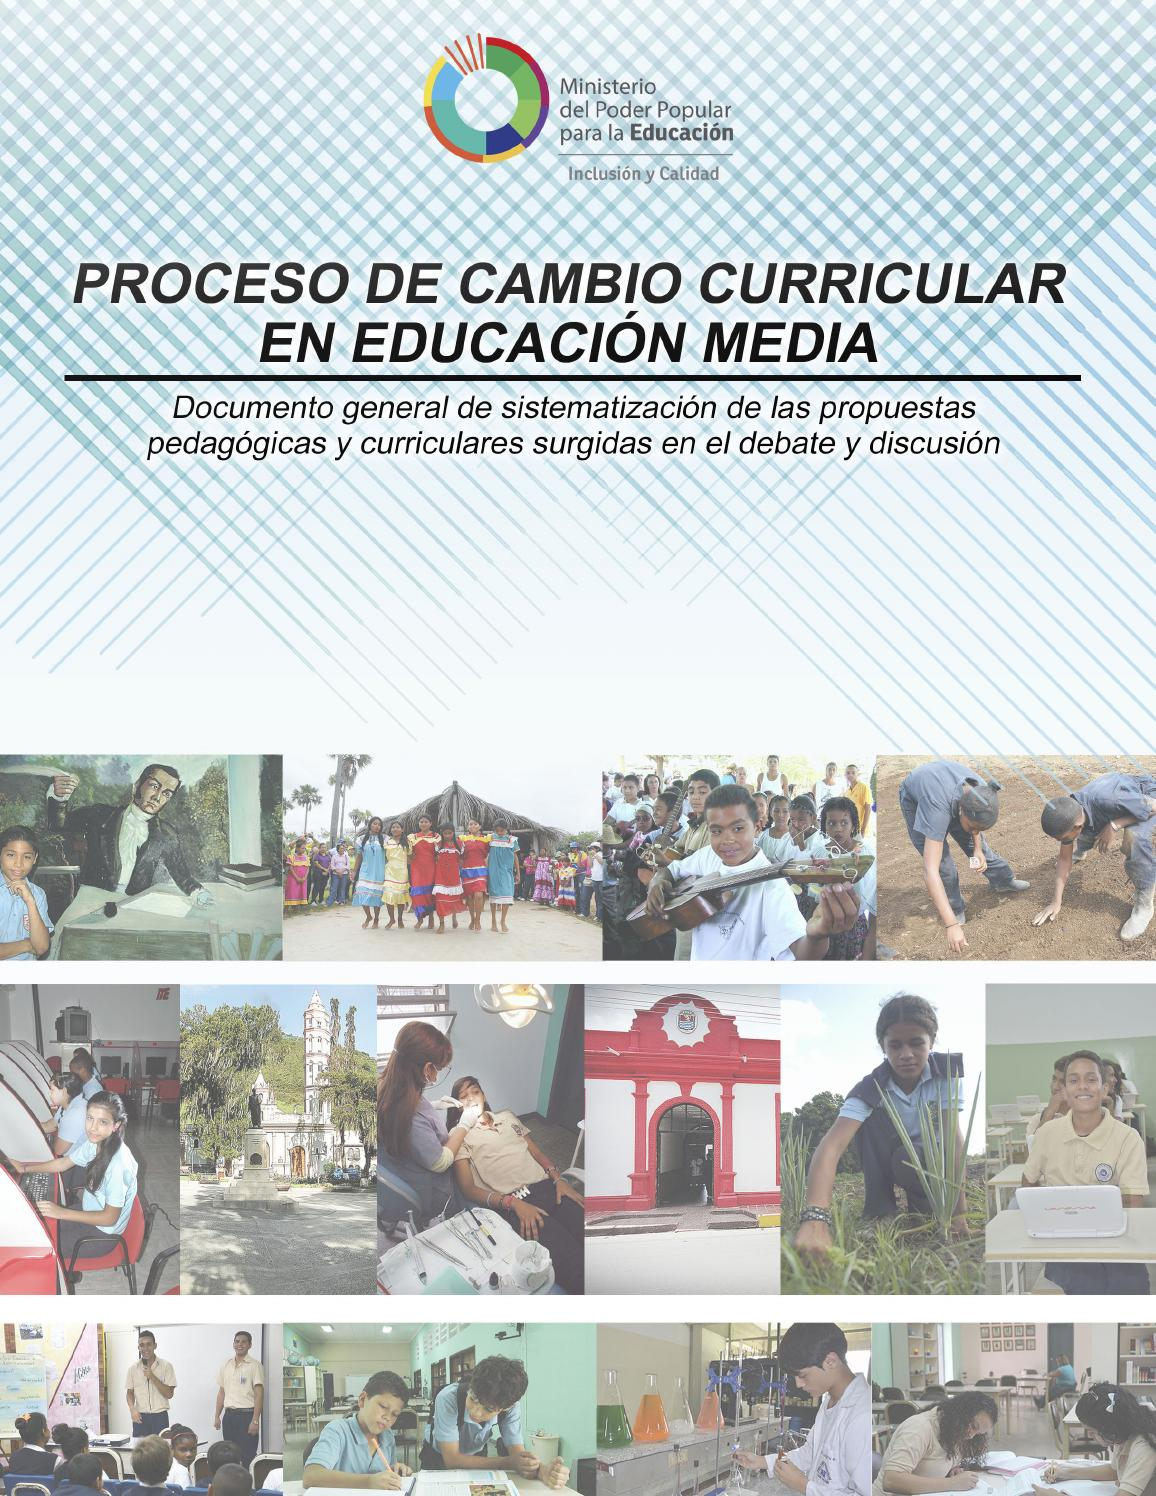 Proceso de cambio curricular en Educación Media by Luis Peñalver - issuu